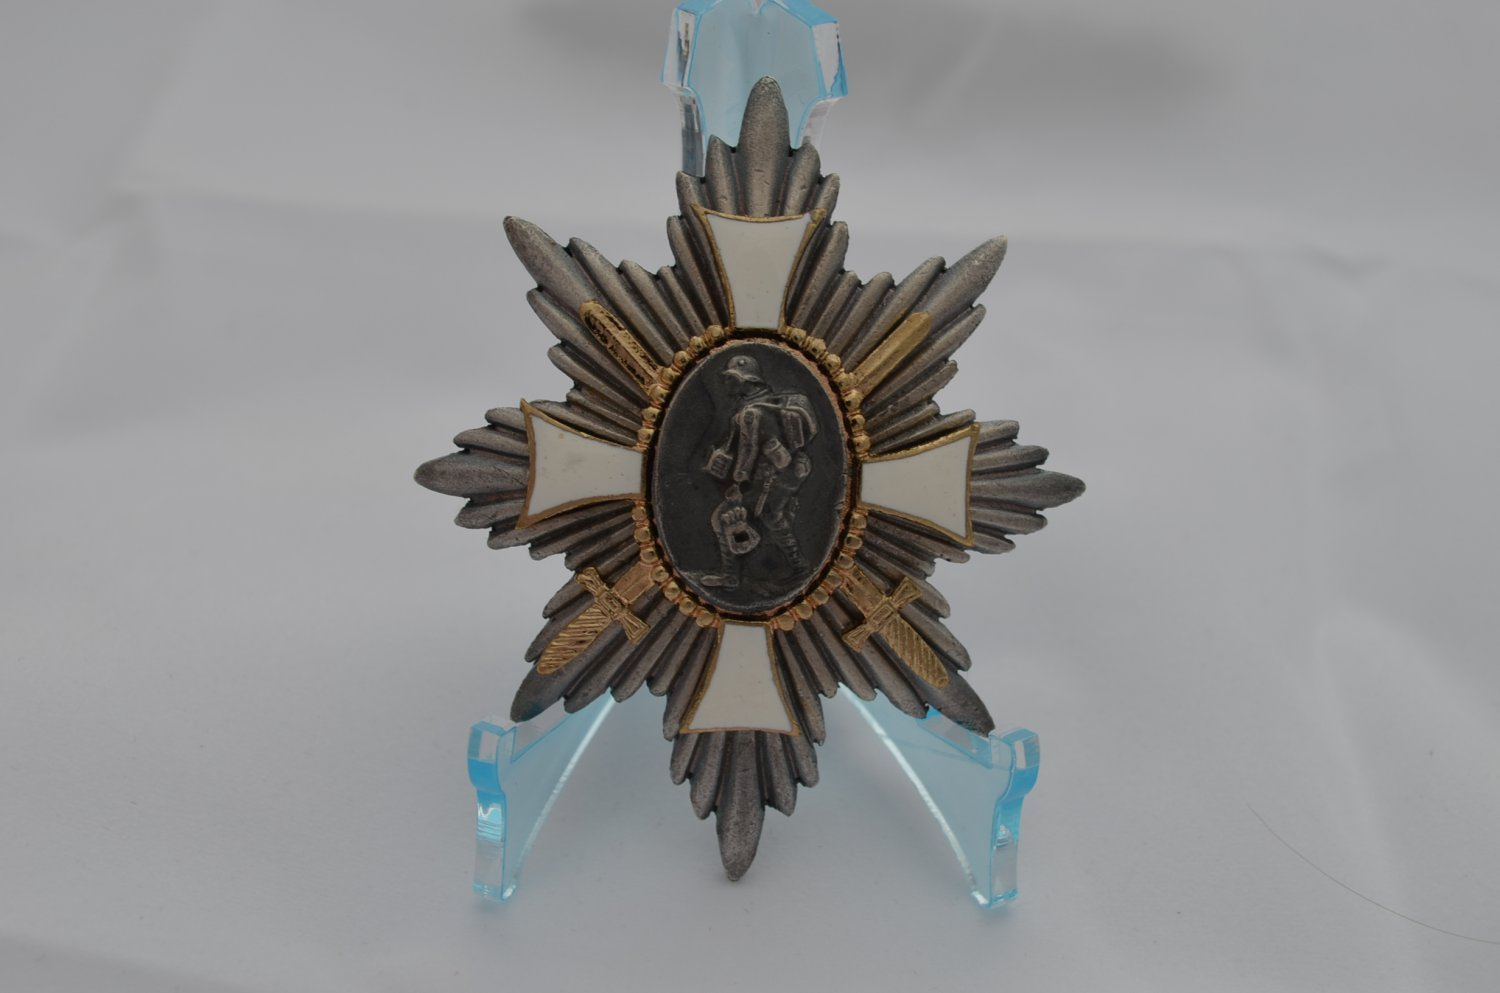 WWI GERMAN HAMBURG FIELD HONOR BADGE